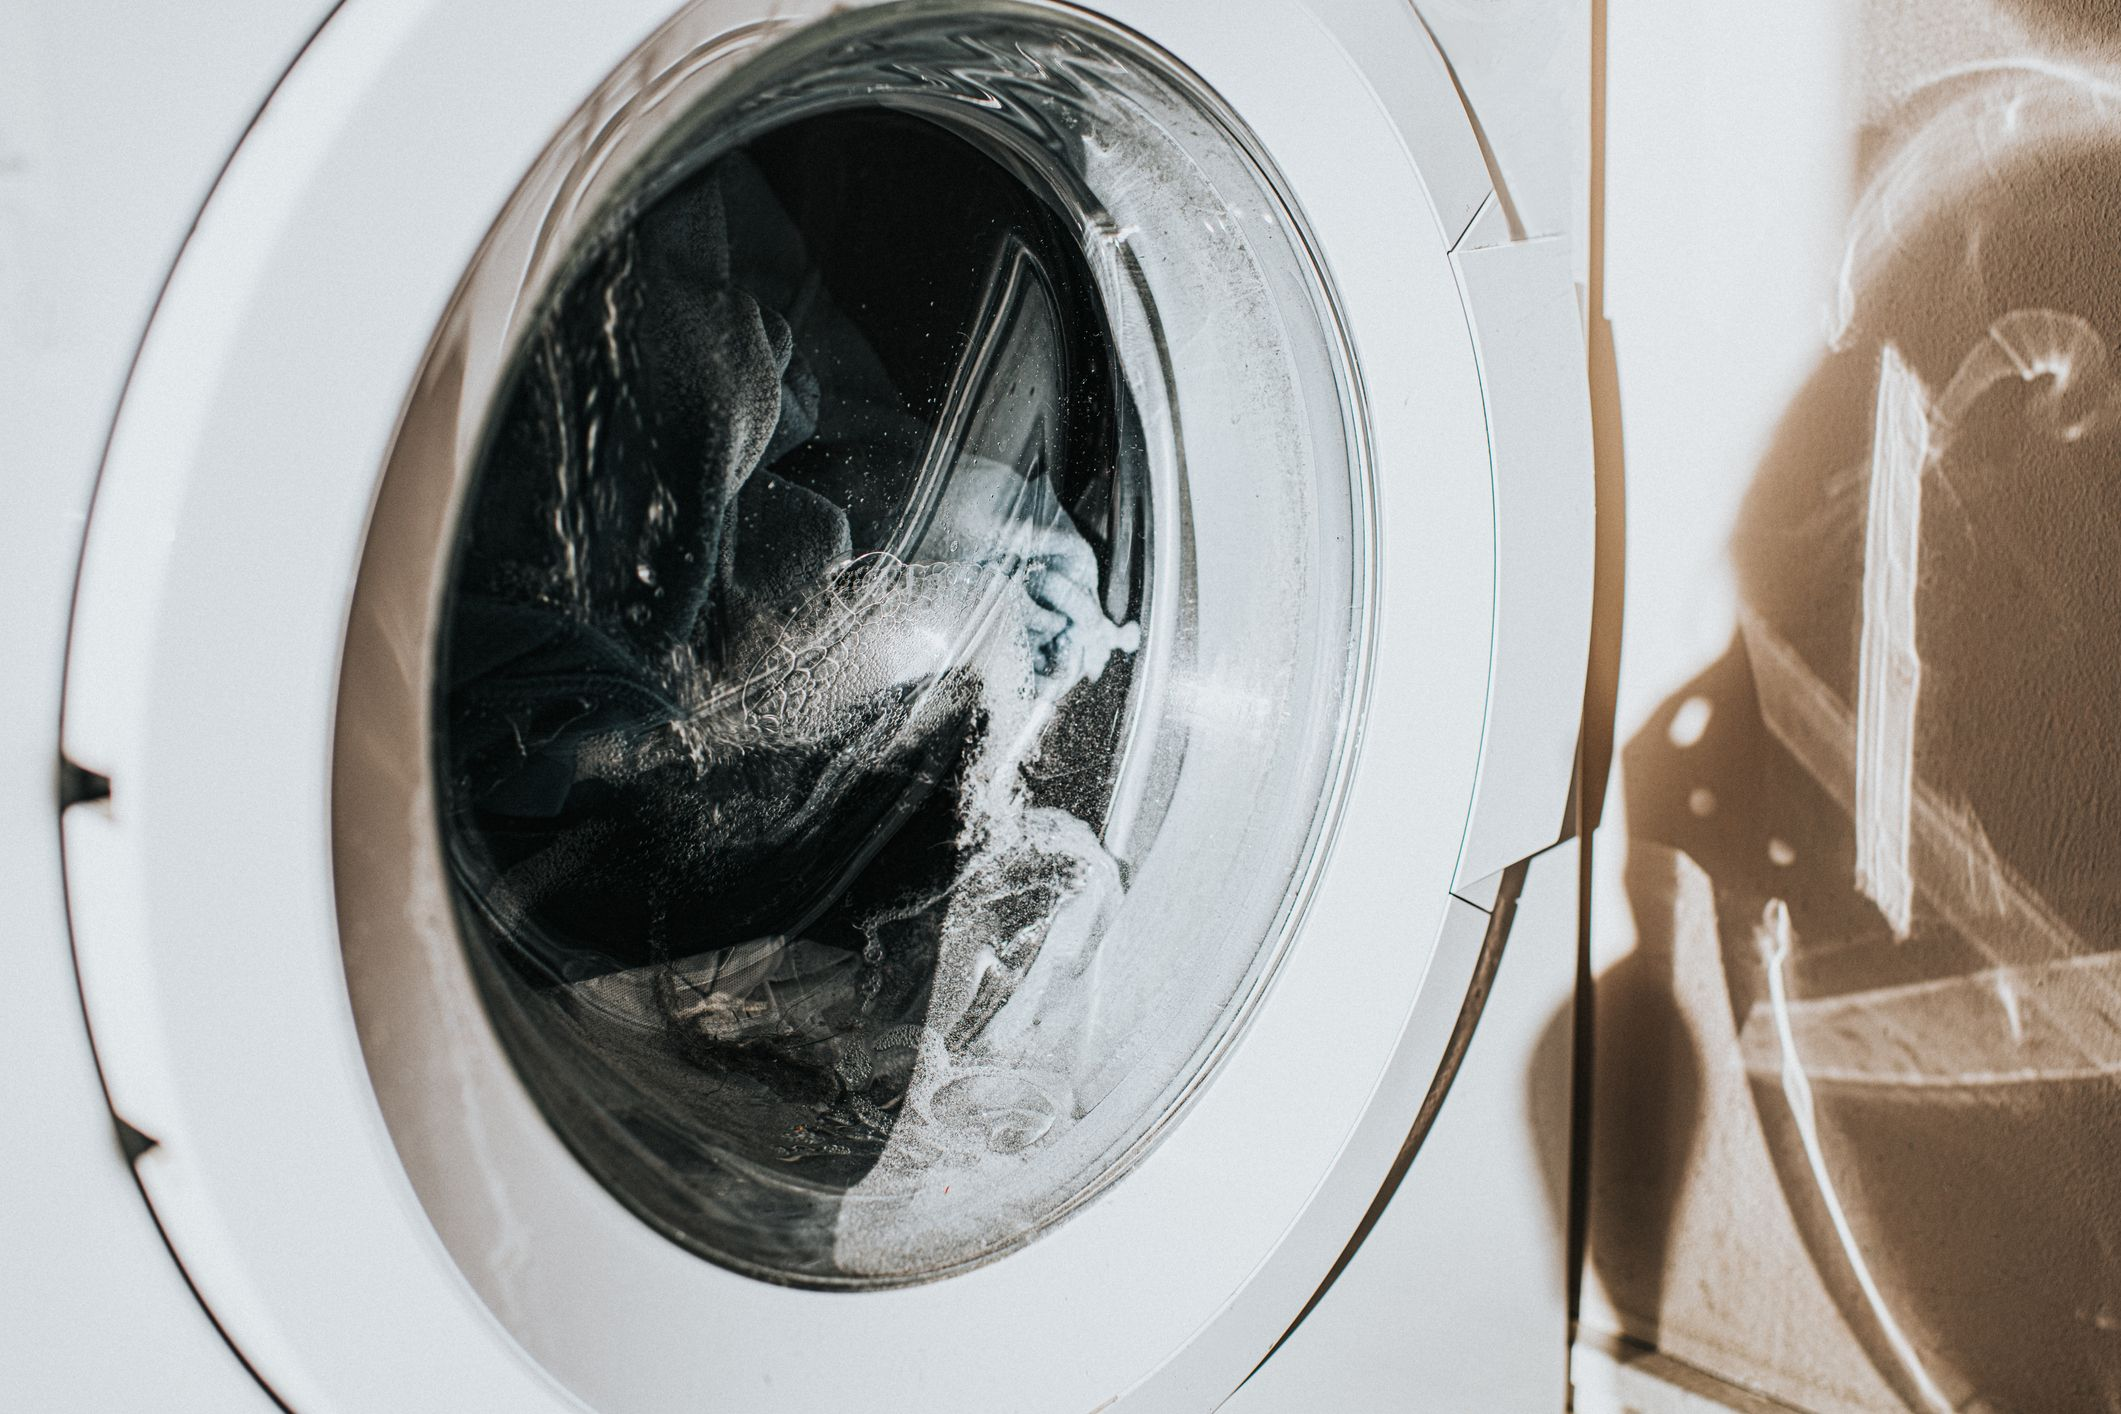 5 sustainable laundry tips to help the planet